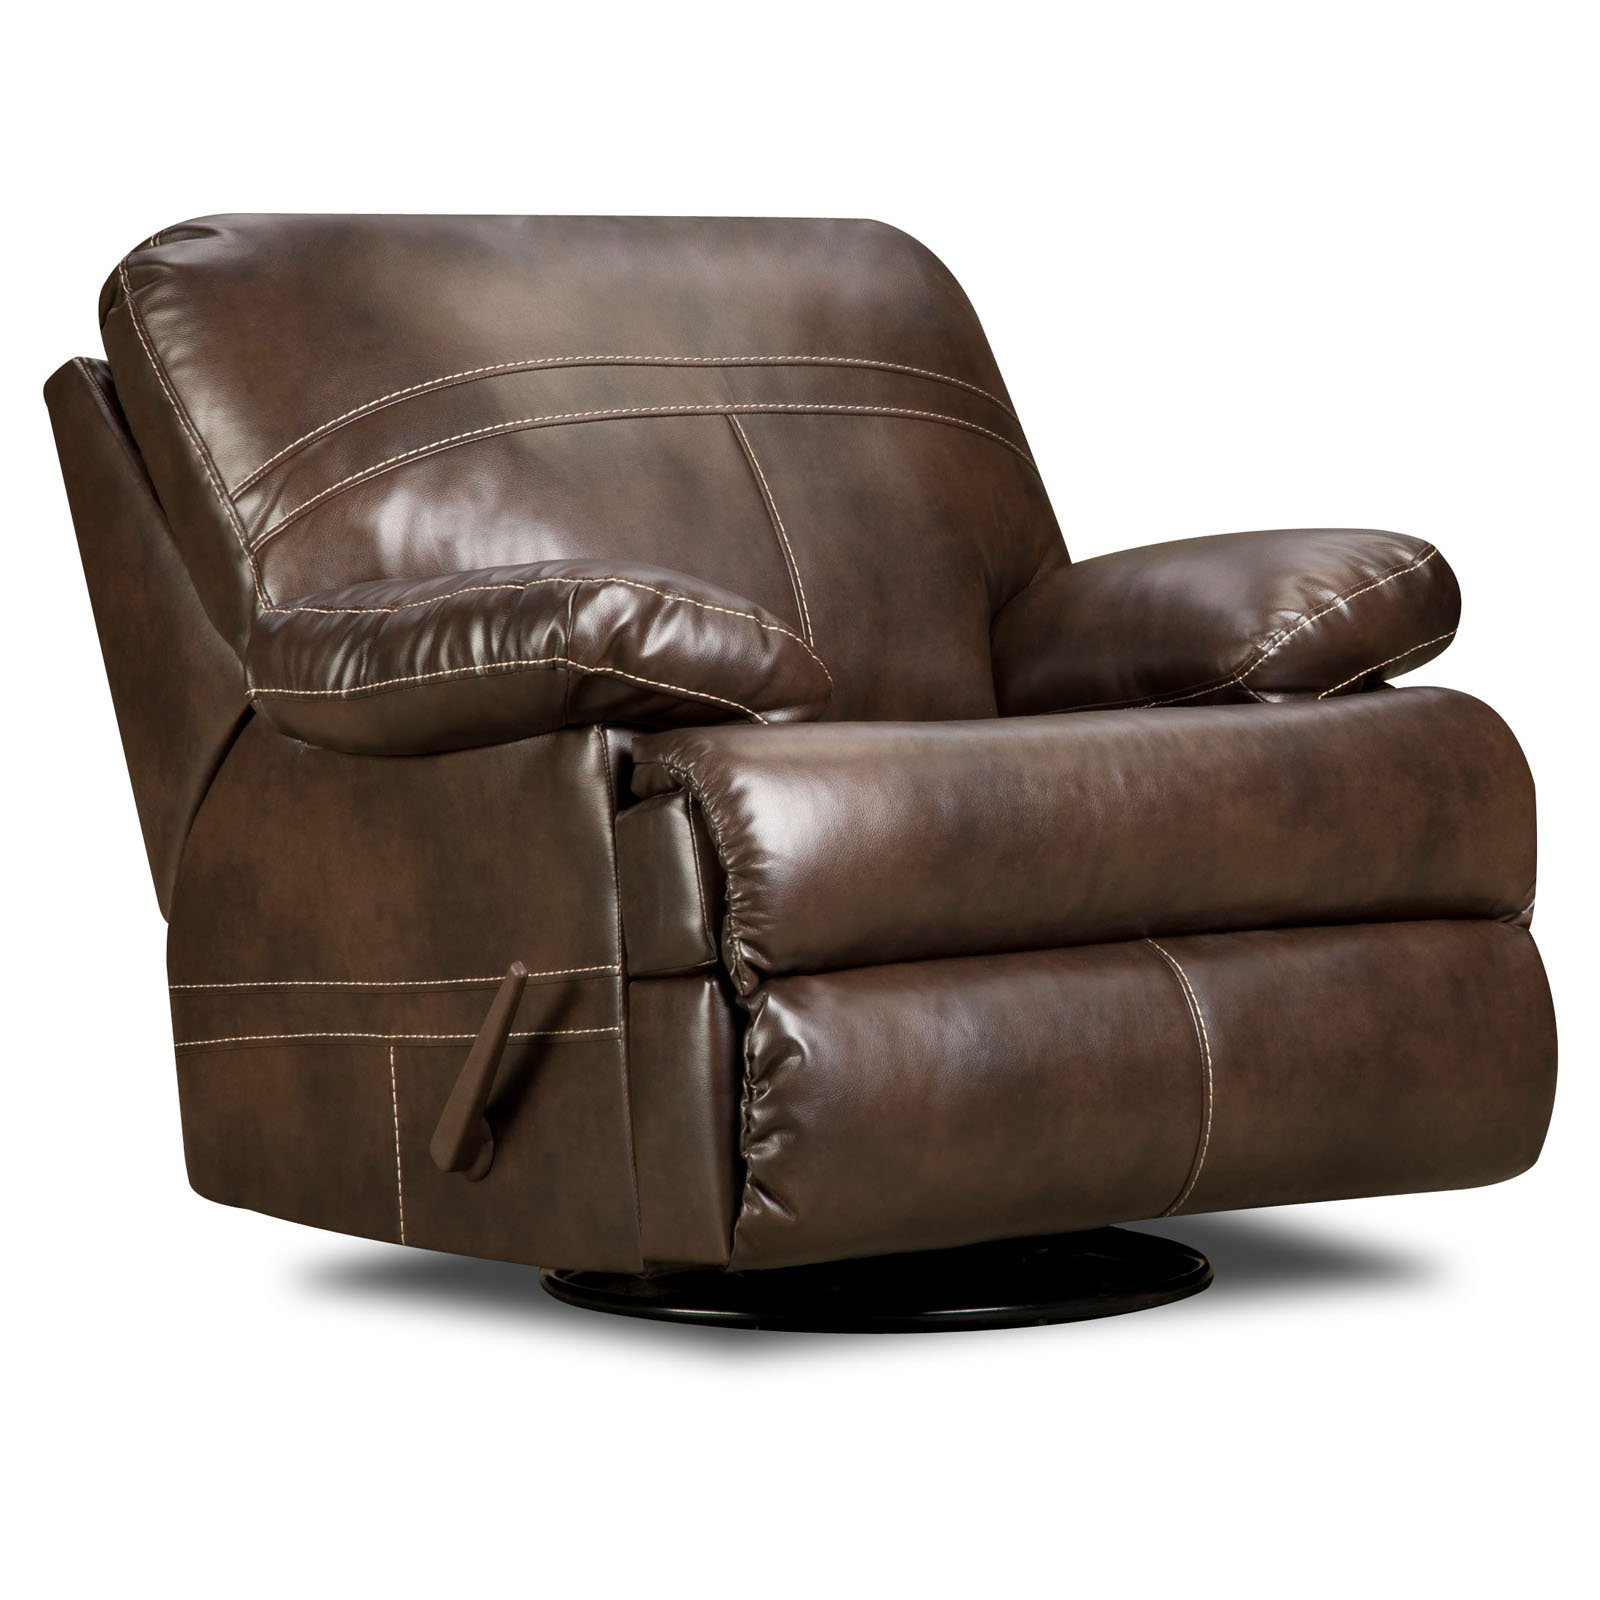 Furniture: Surprising Simmons Recliners For Contemporary Living Room For Rogan Leather Cafe Latte Swivel Glider Recliners (Image 6 of 20)